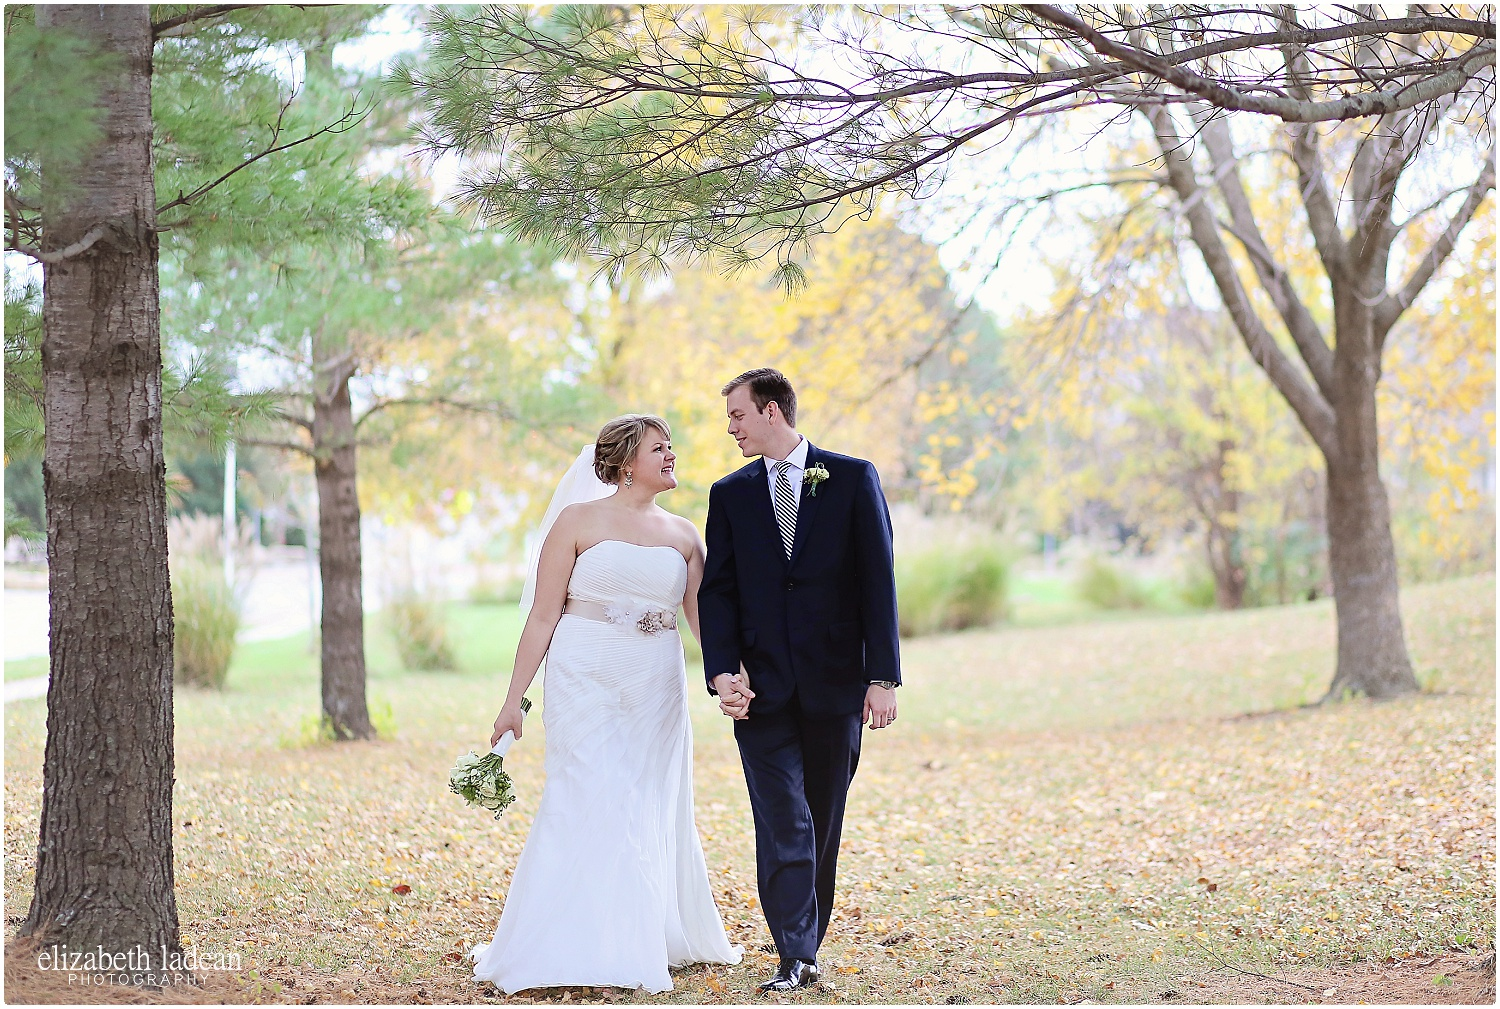 Deer-Creek-Weddings-Anniversary-K+D-Oct-ElizabethLadeanPhotography-photo_6333.jpg